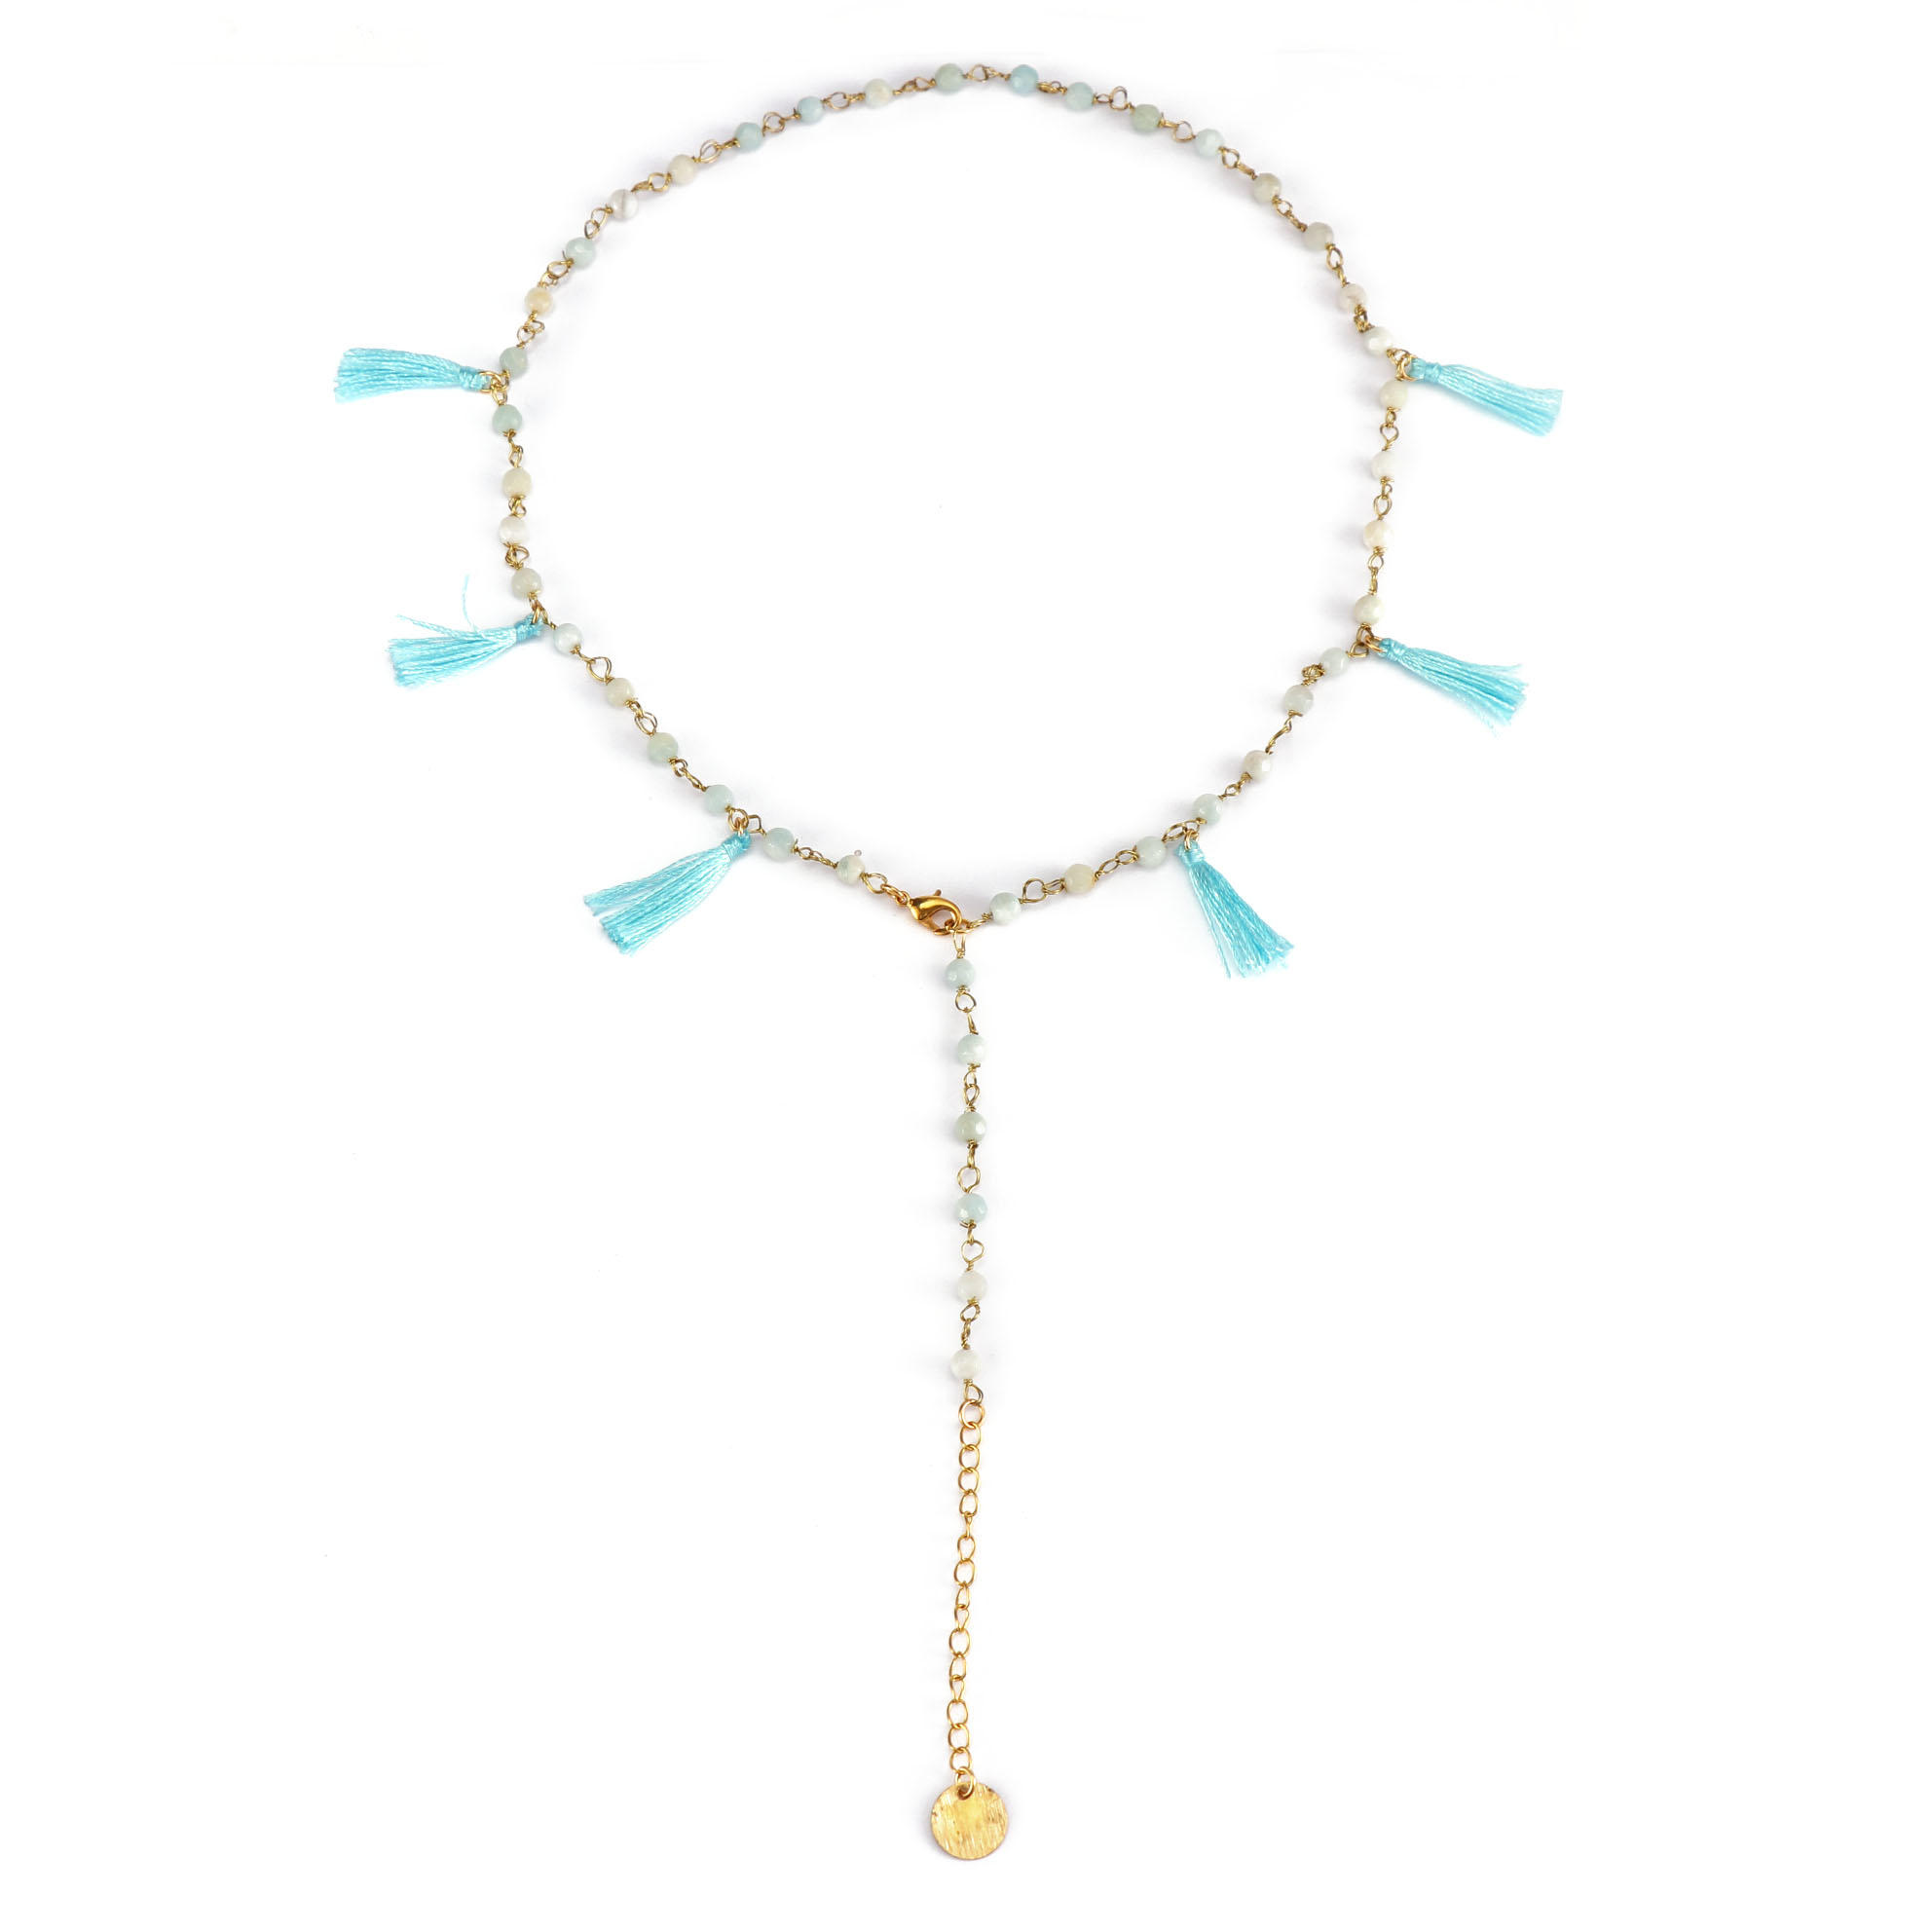 trustworthy crystal choker necklace tassel inquire now for gift-3